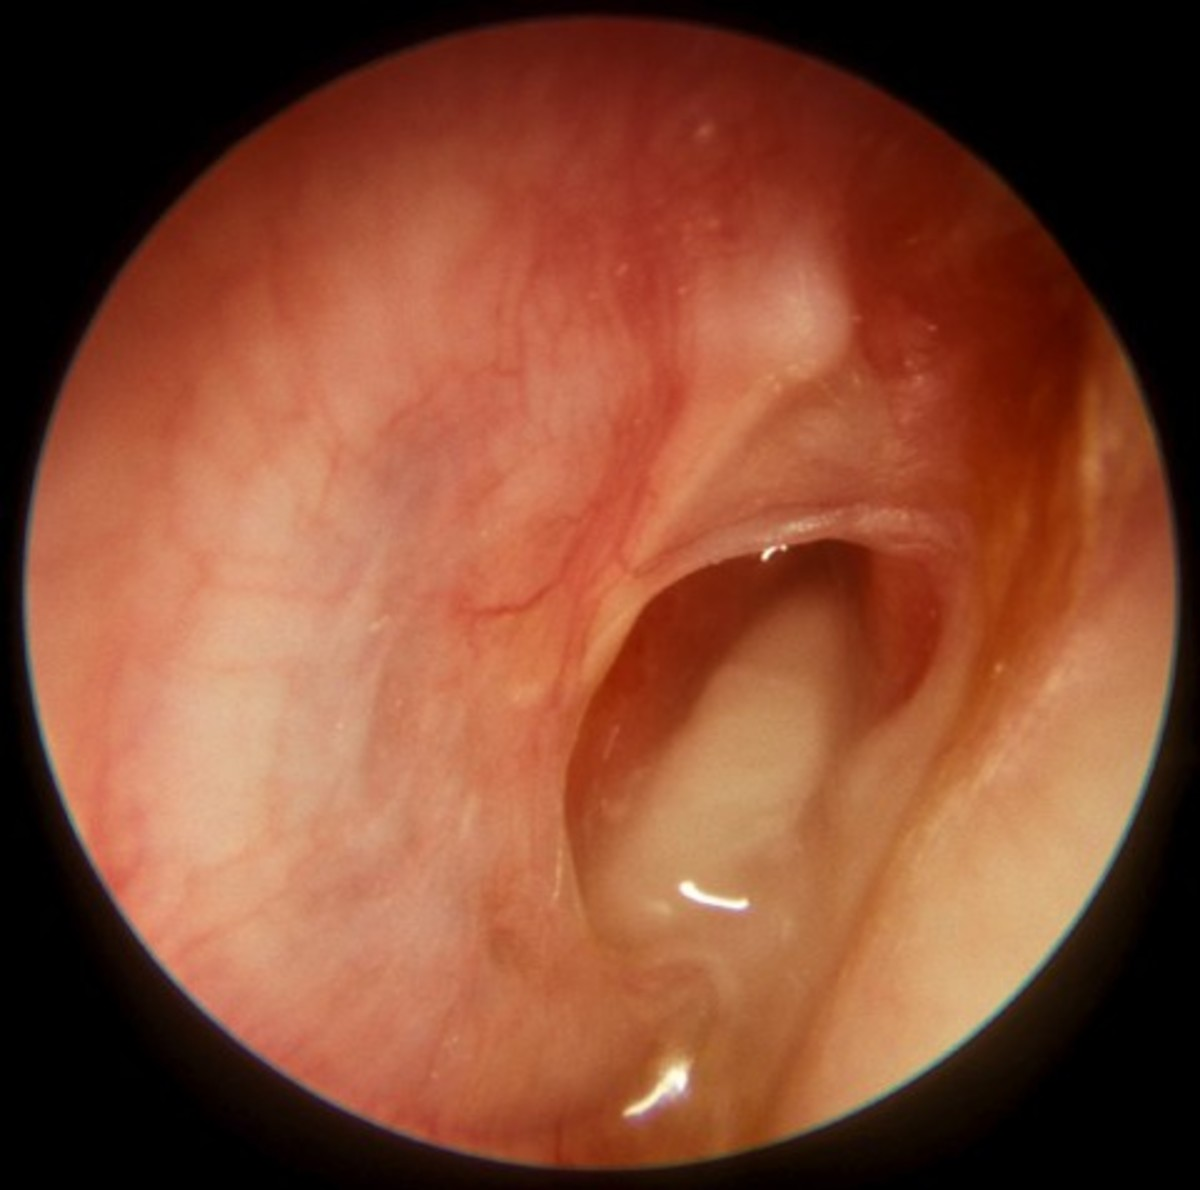 inner-ear-infection-symptoms-causes-treatment-pictures